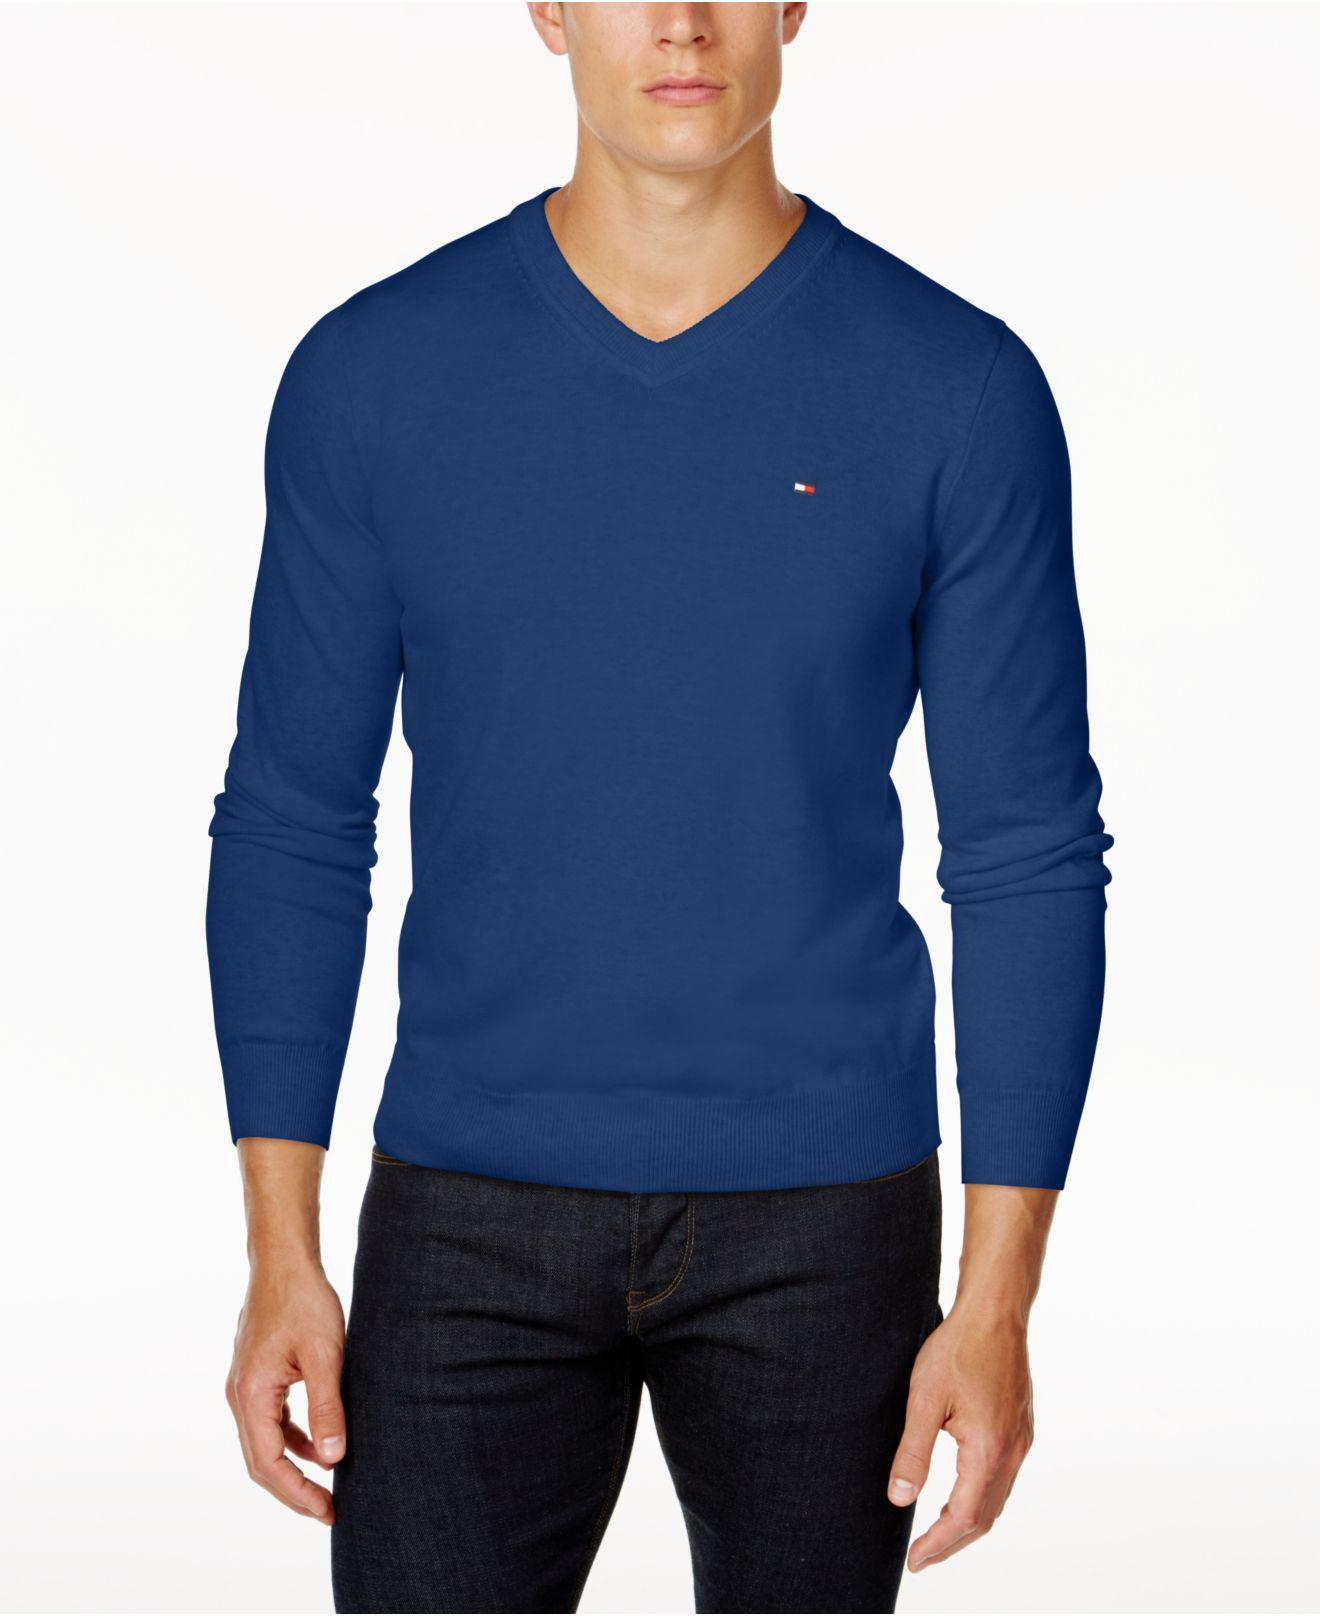 383f9b18d2293 Lyst - Tommy Hilfiger Signature Solid V-neck Sweater in Blue for Men